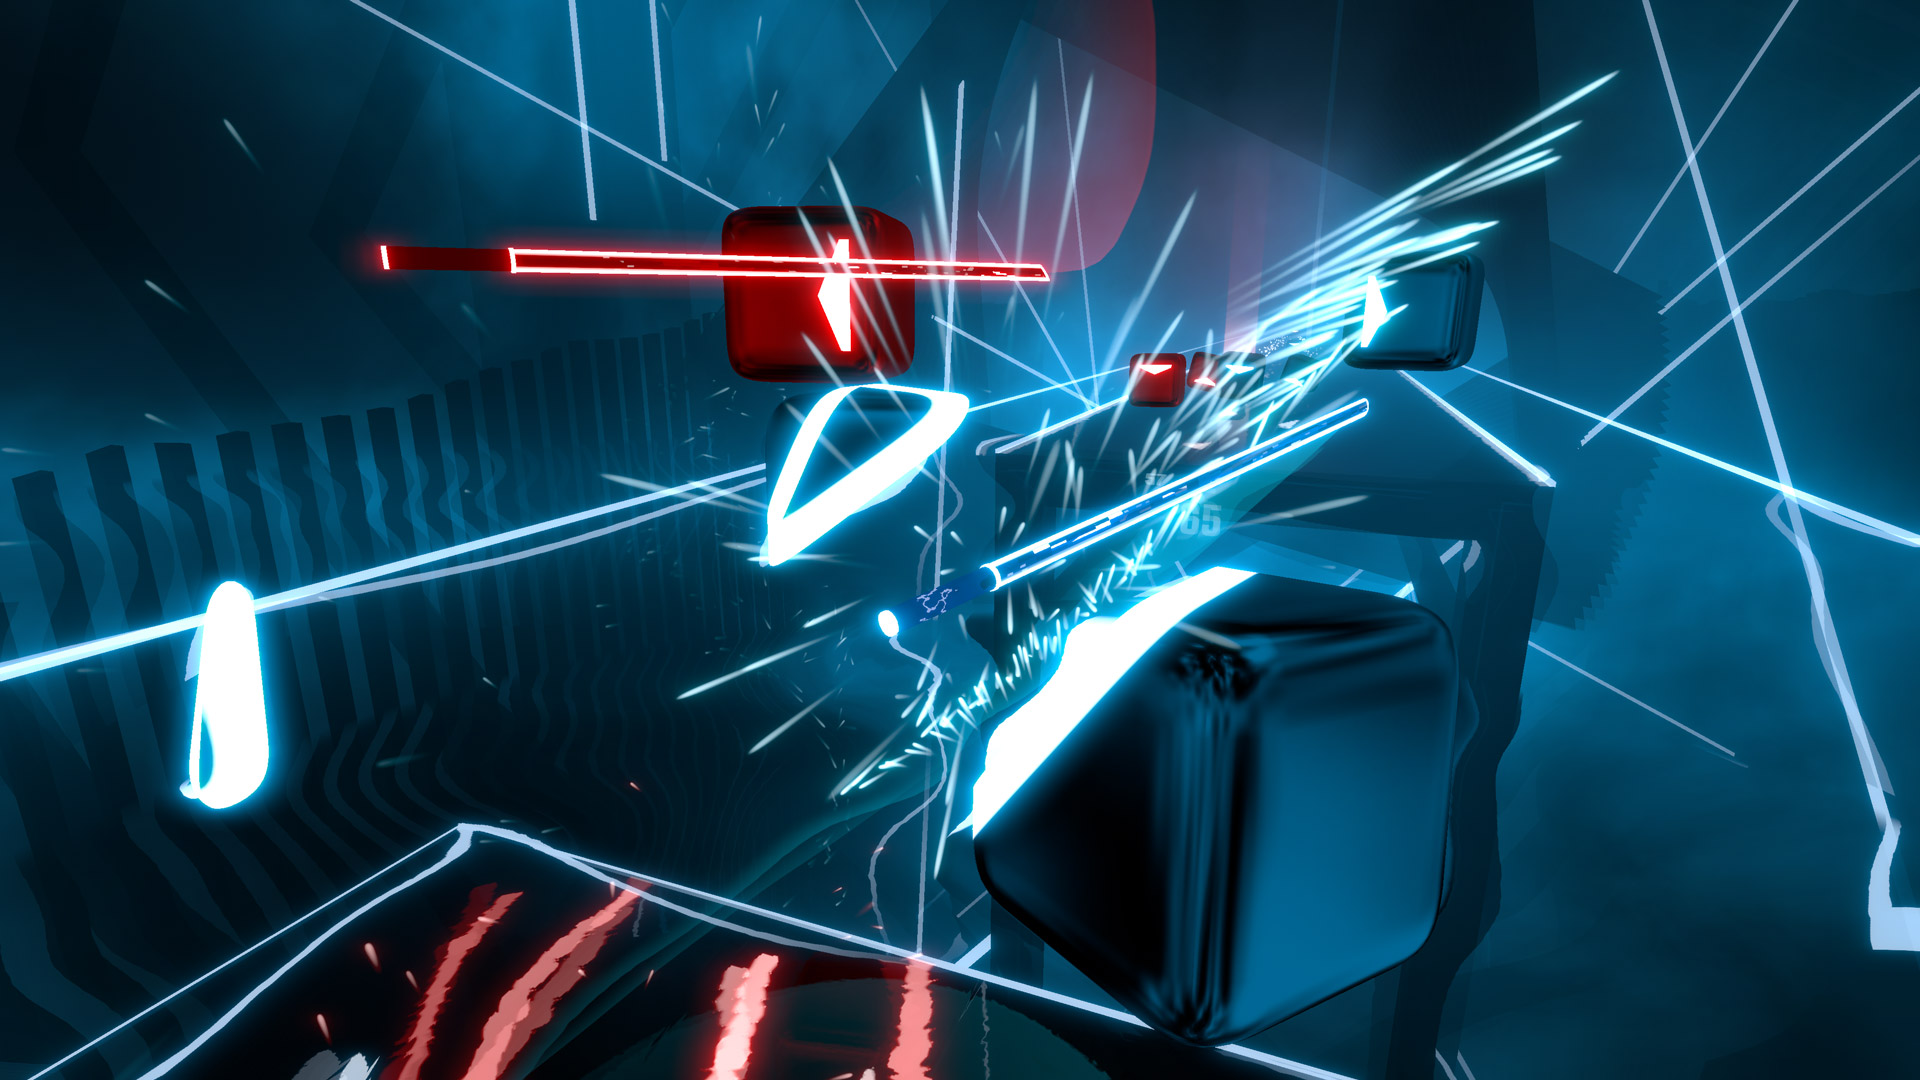 'Beat Saber' Has Been PSVR's Top Download for 6 Months Running